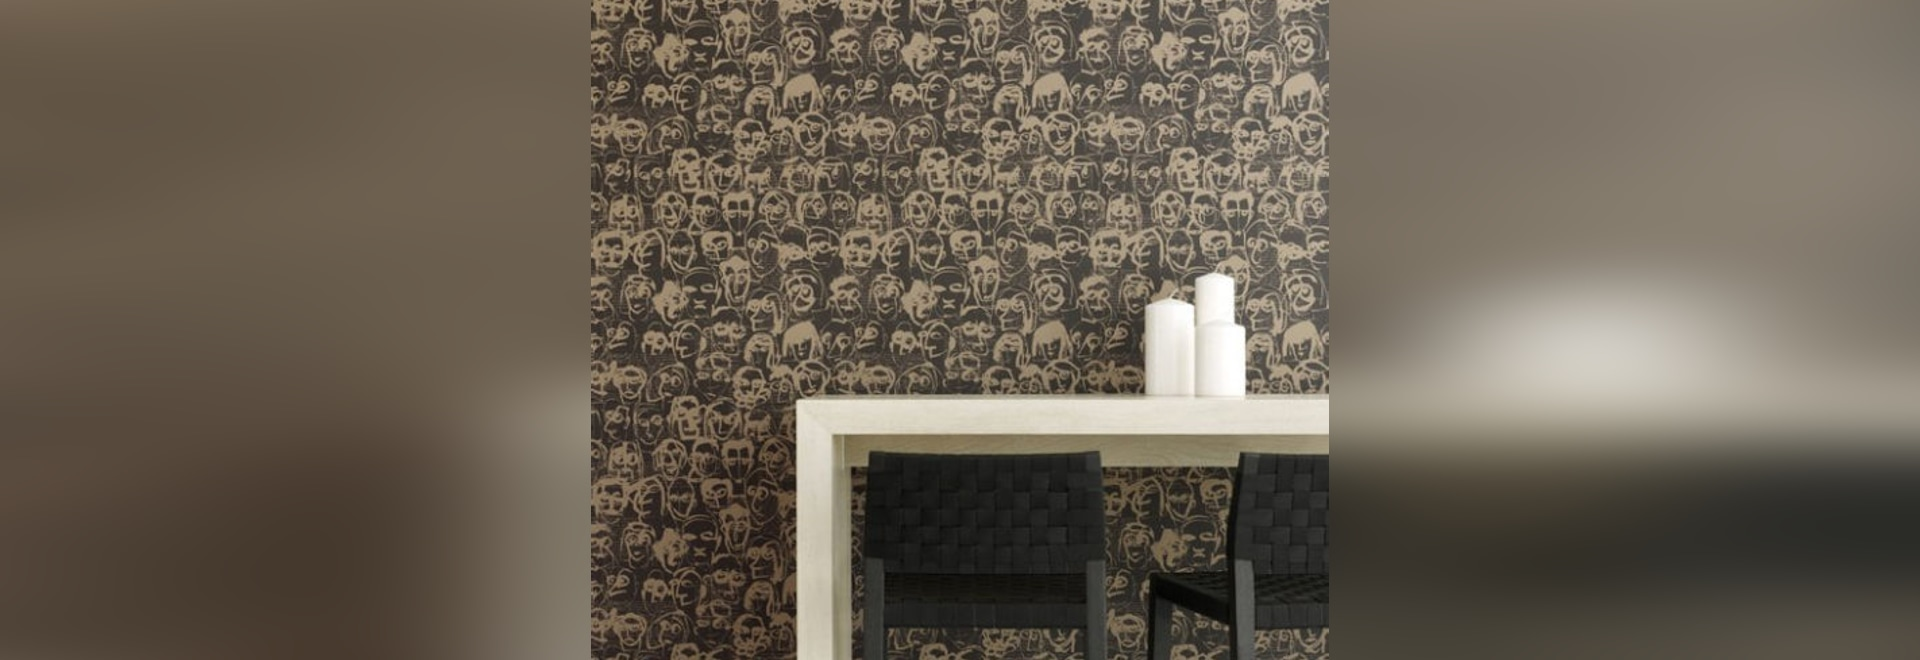 Les amis: the new wallpaper for the collection 'Divertimento'